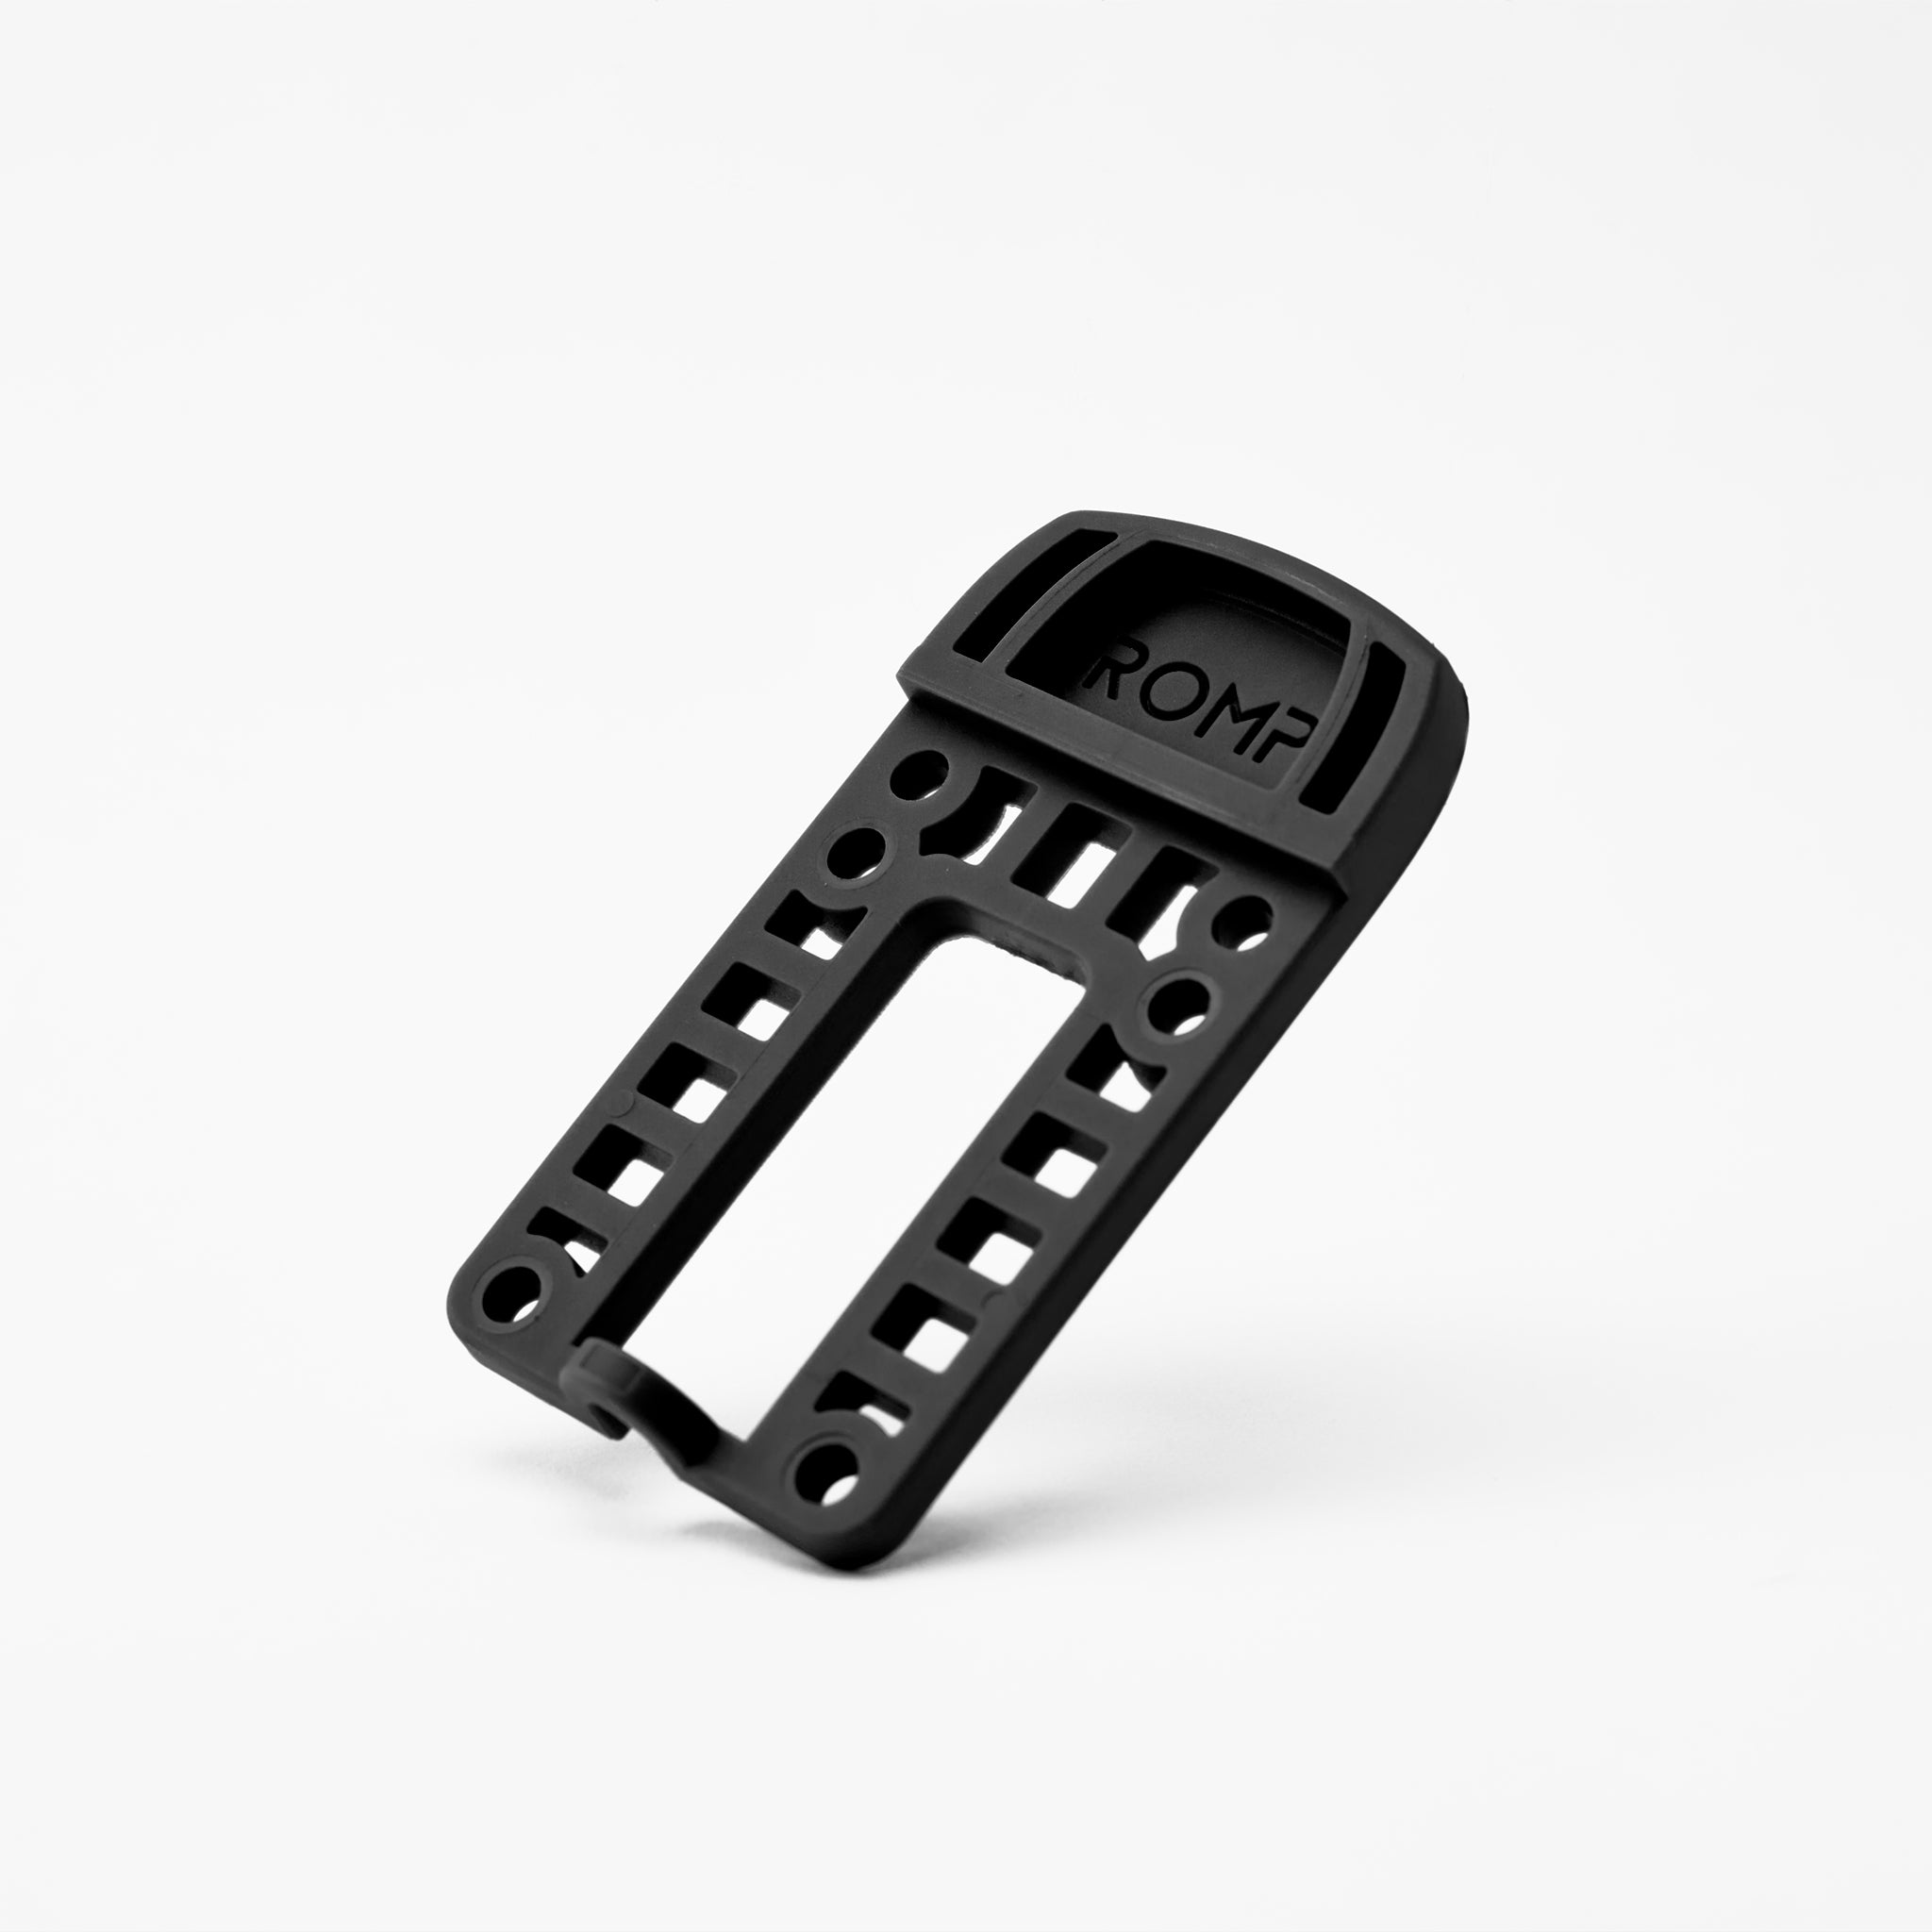 ROMP Shock Guard, STEALTH BLACK - Romp Supply